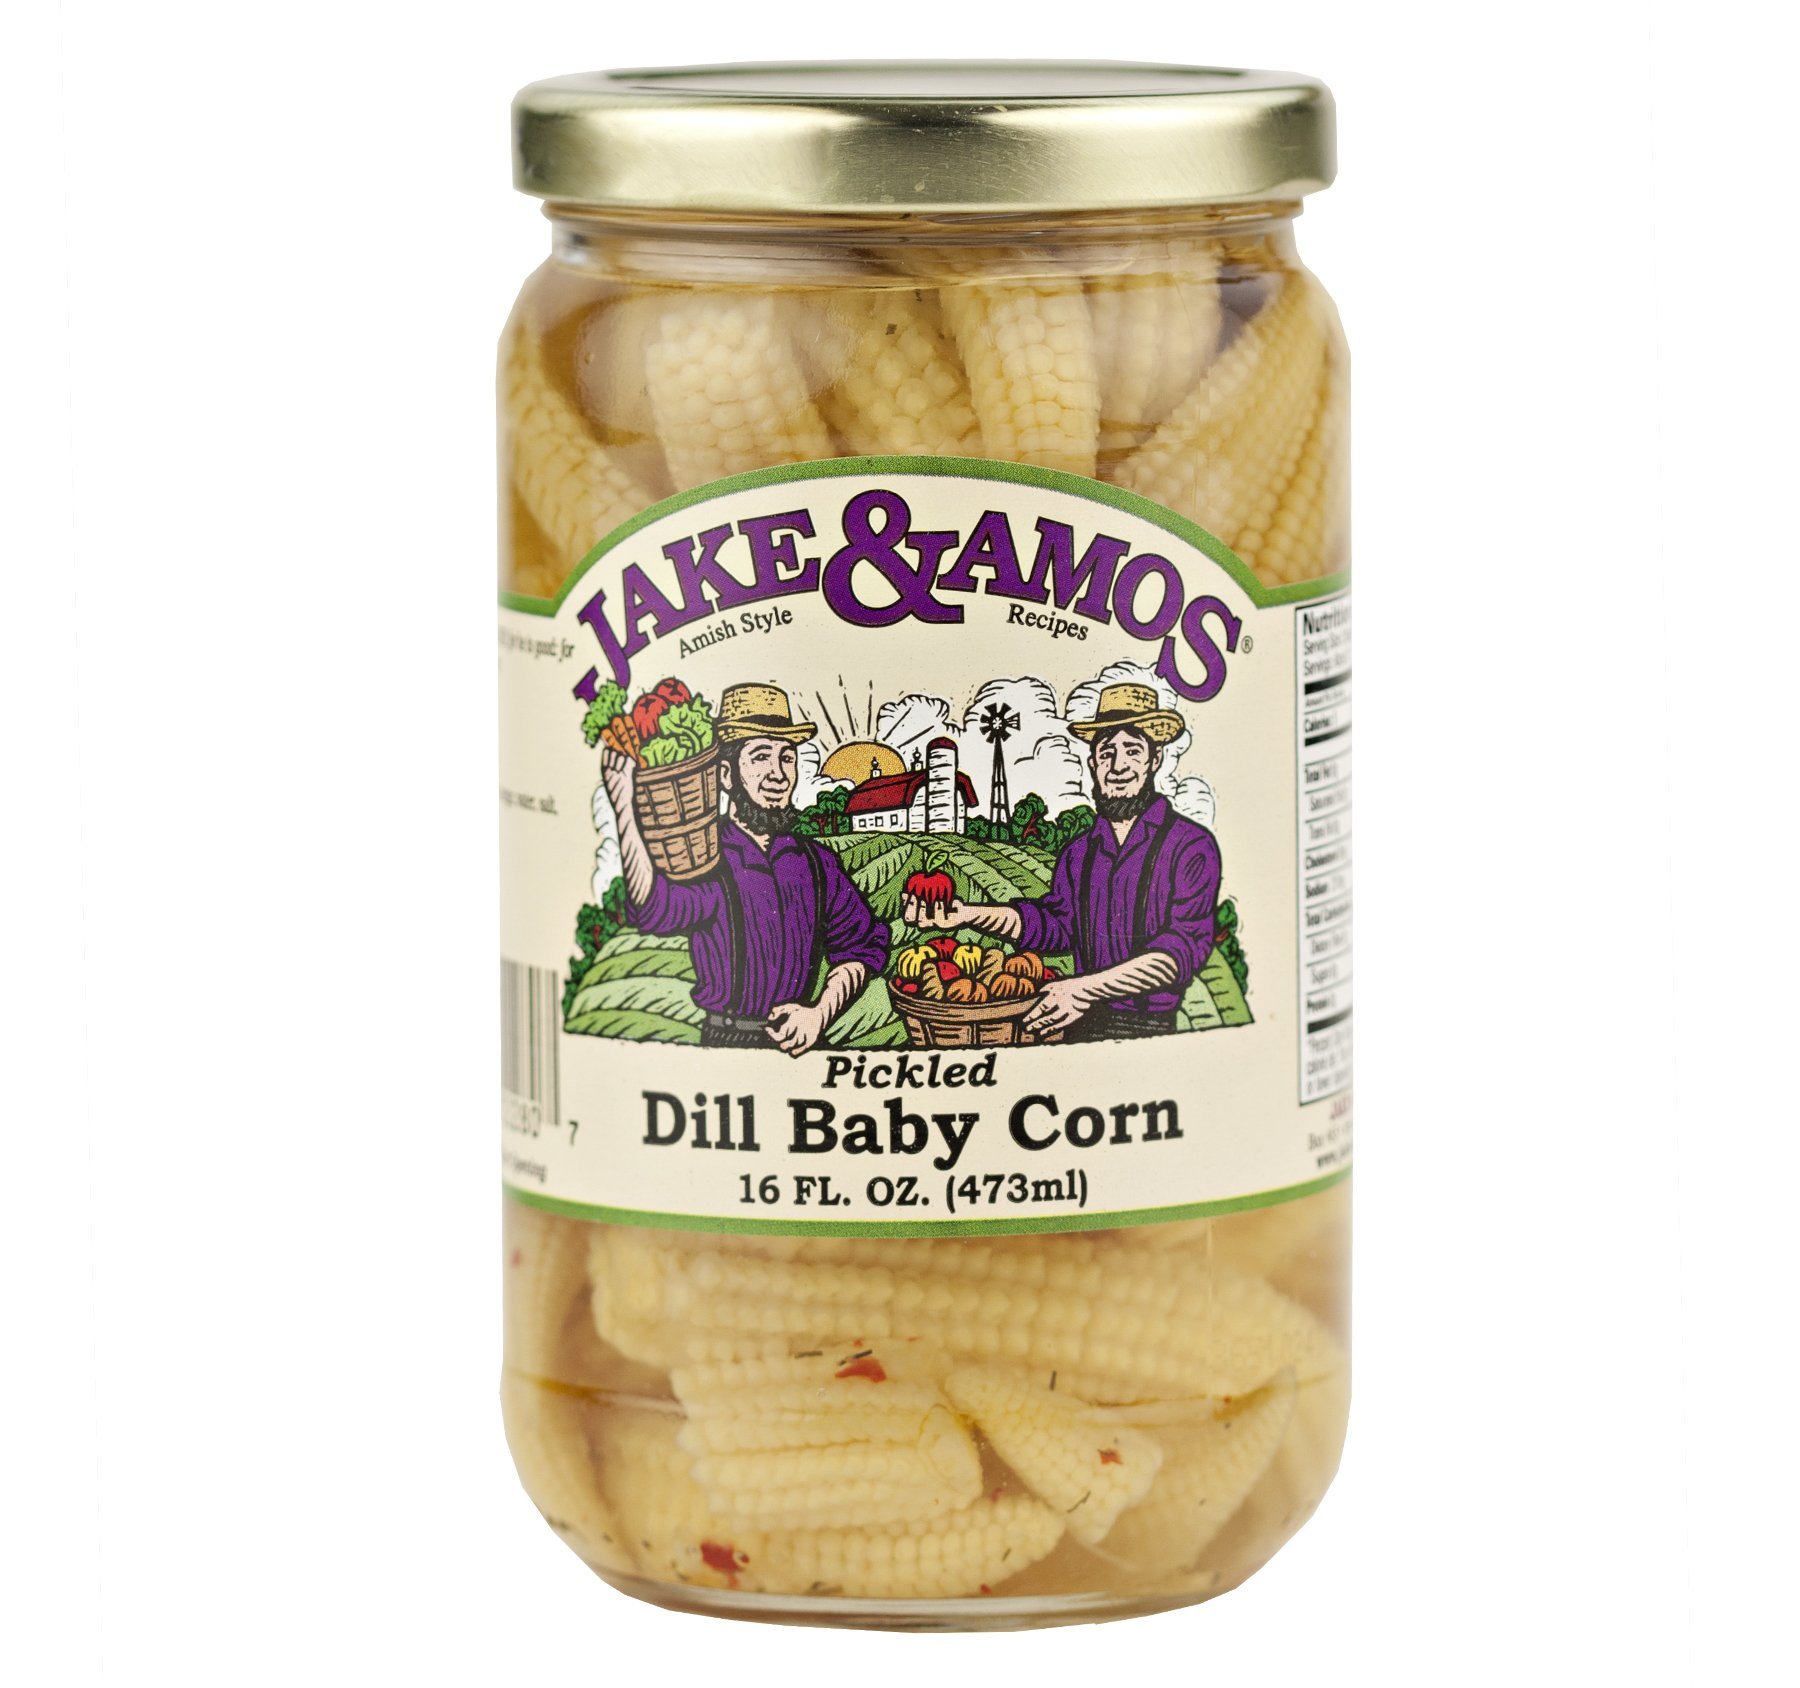 Jake & Amos Pickled Dill Baby Corn / 2 - 16 Oz. Jars by Jake & Amos